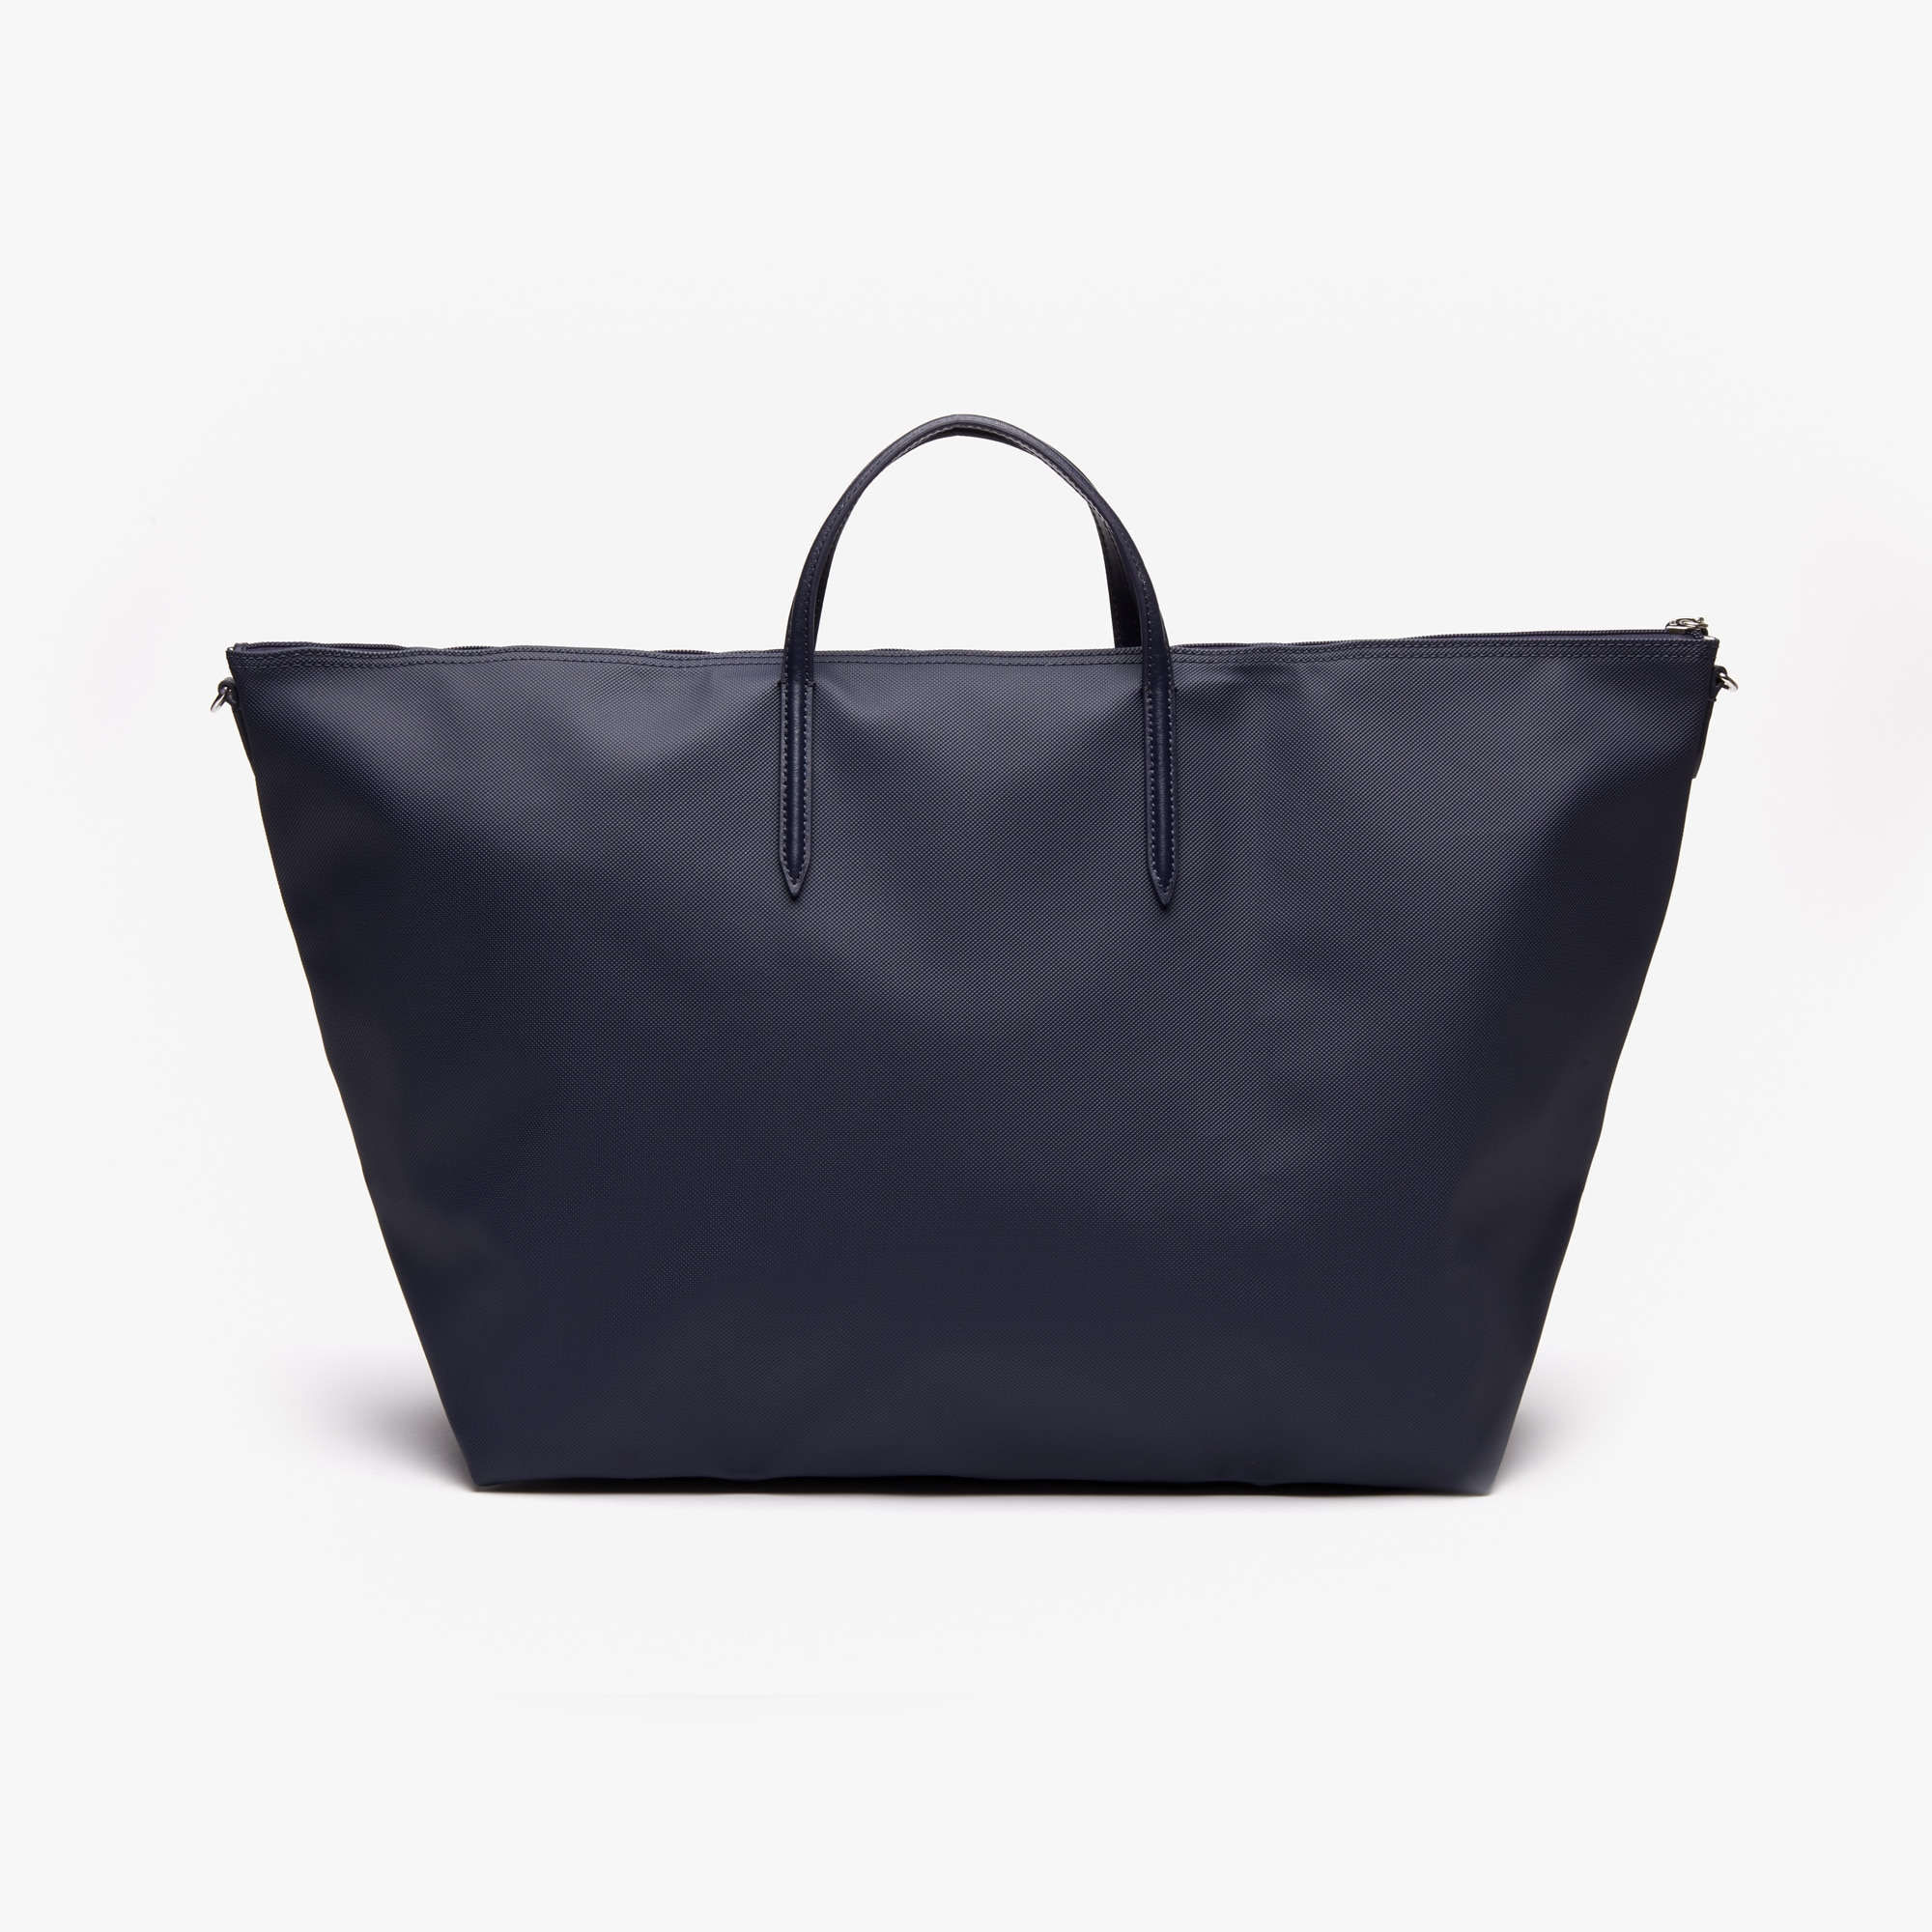 Women's L.12.12 Concept Weekend Tote Bag